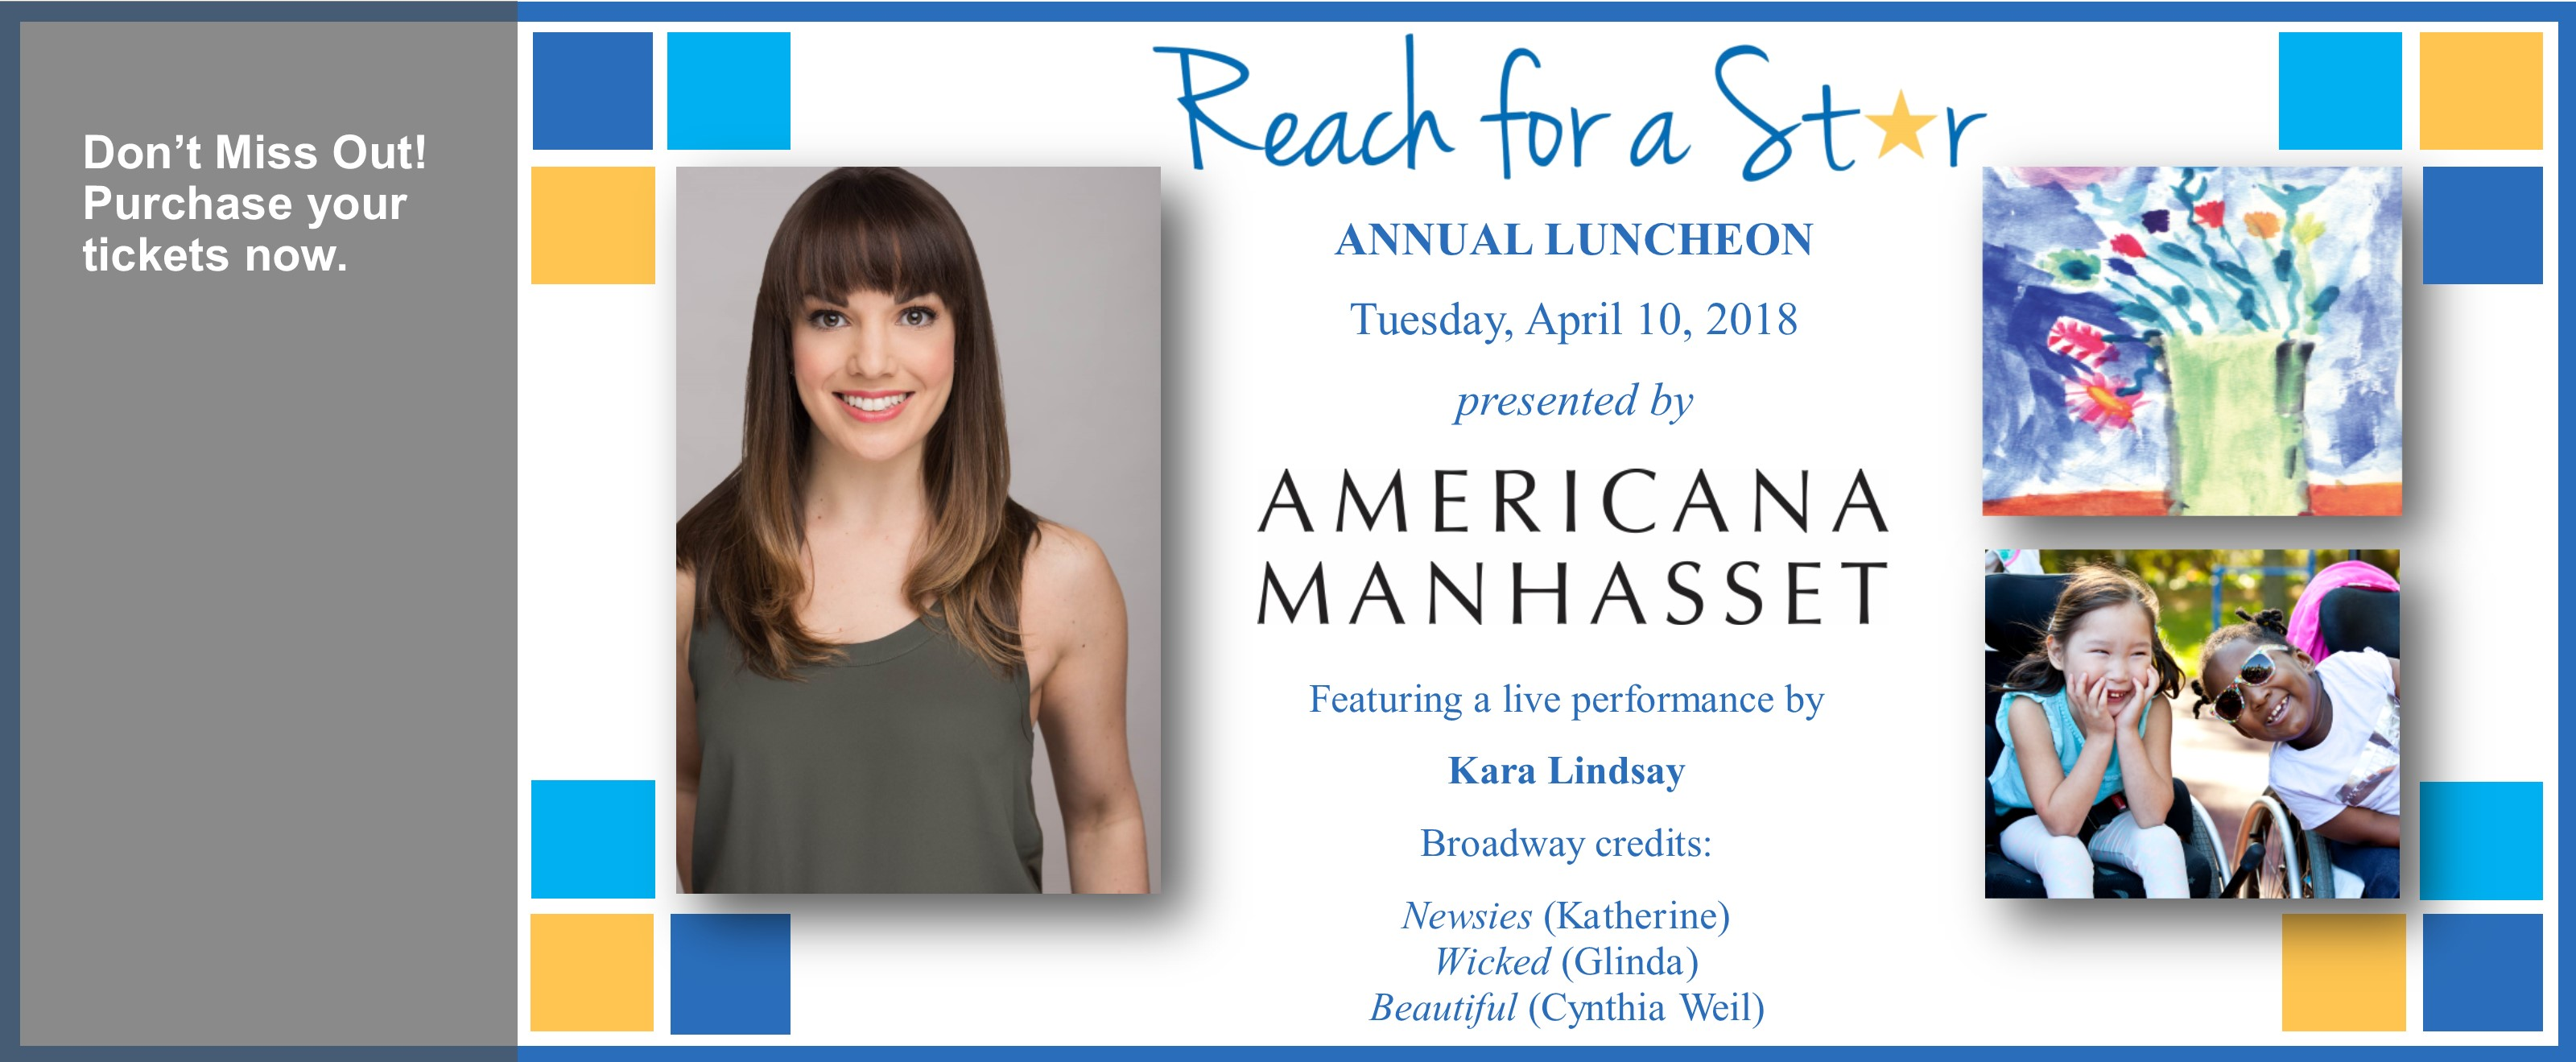 Reach for a Star Annual Luncheon, April 10, 2018 presented by Americana Manhasset. Featuring a live performance by Kara Lindsay. Broadway credits: Newsies (Katherine), Wicked (Glinda), Beautiful (Cynthia Weil). Don't miss out! Purchase your tickets now.